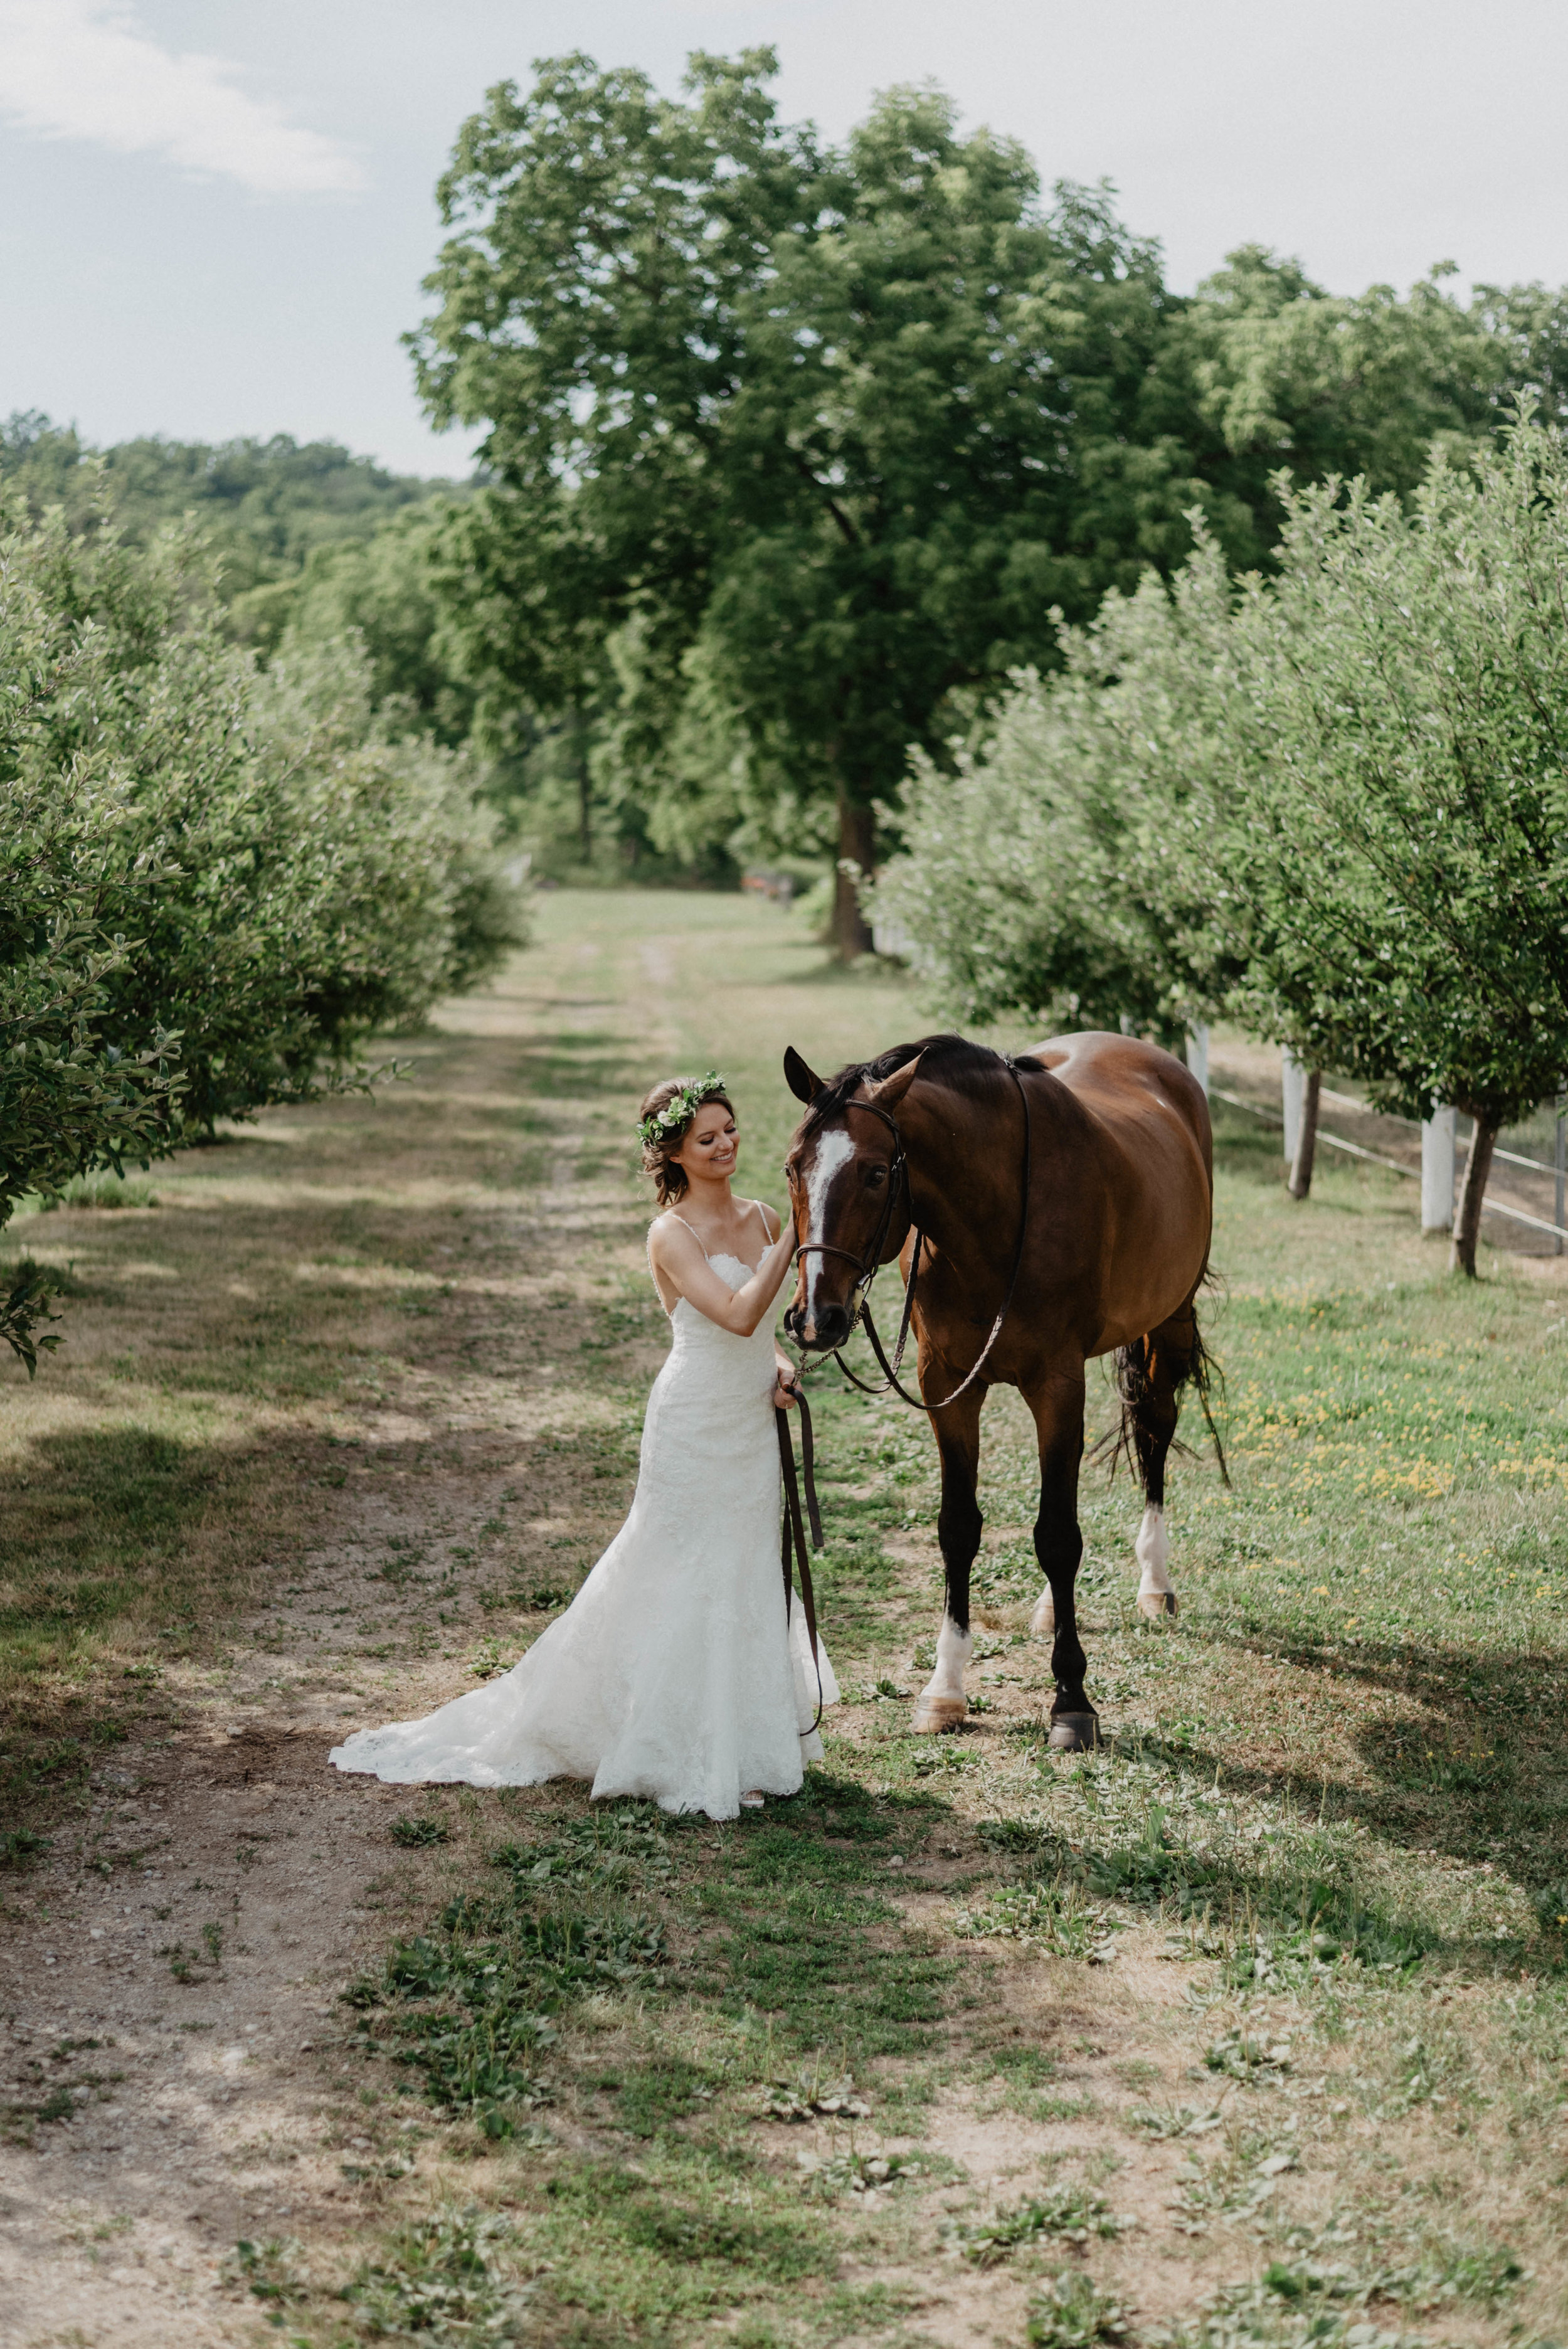 Bride and horse in orchard